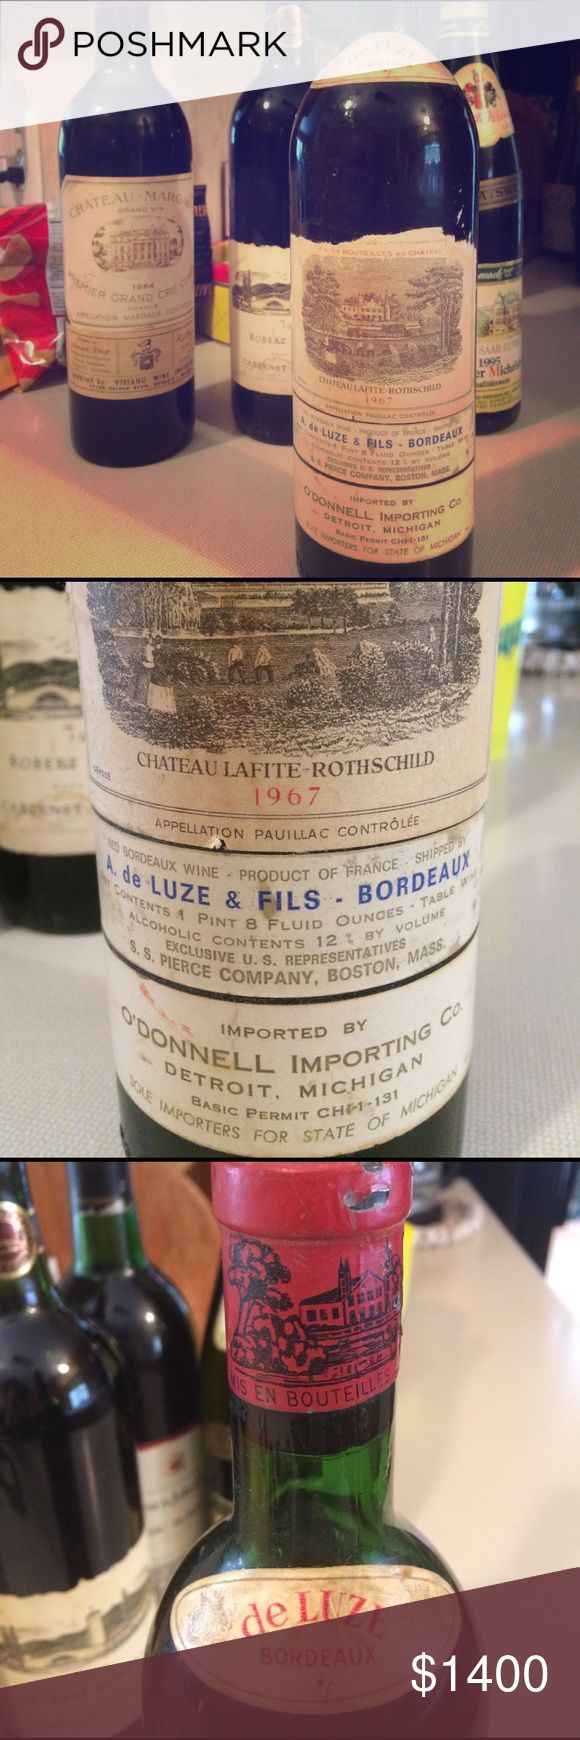 NEVER OPENED!🍷 1967 Château Lafite-Rothschild RED RARE RED WINE! AGED SINCE 1967! NEVER OPENED! VALUED AT $1200! IMPORTED From FRANCE! Mis En Boutilles Au Chateau AUTHENTIC! IF ANY QUESTIONS CONTACT brownlauren31@yahoo.com for SINCERE INQUIRIES ONLY! WILL DELIVER ONLY TO RESIDENTS OF MICHIGAN! DELIVERY ONLY! Chateau Lafite-Rothschild Other